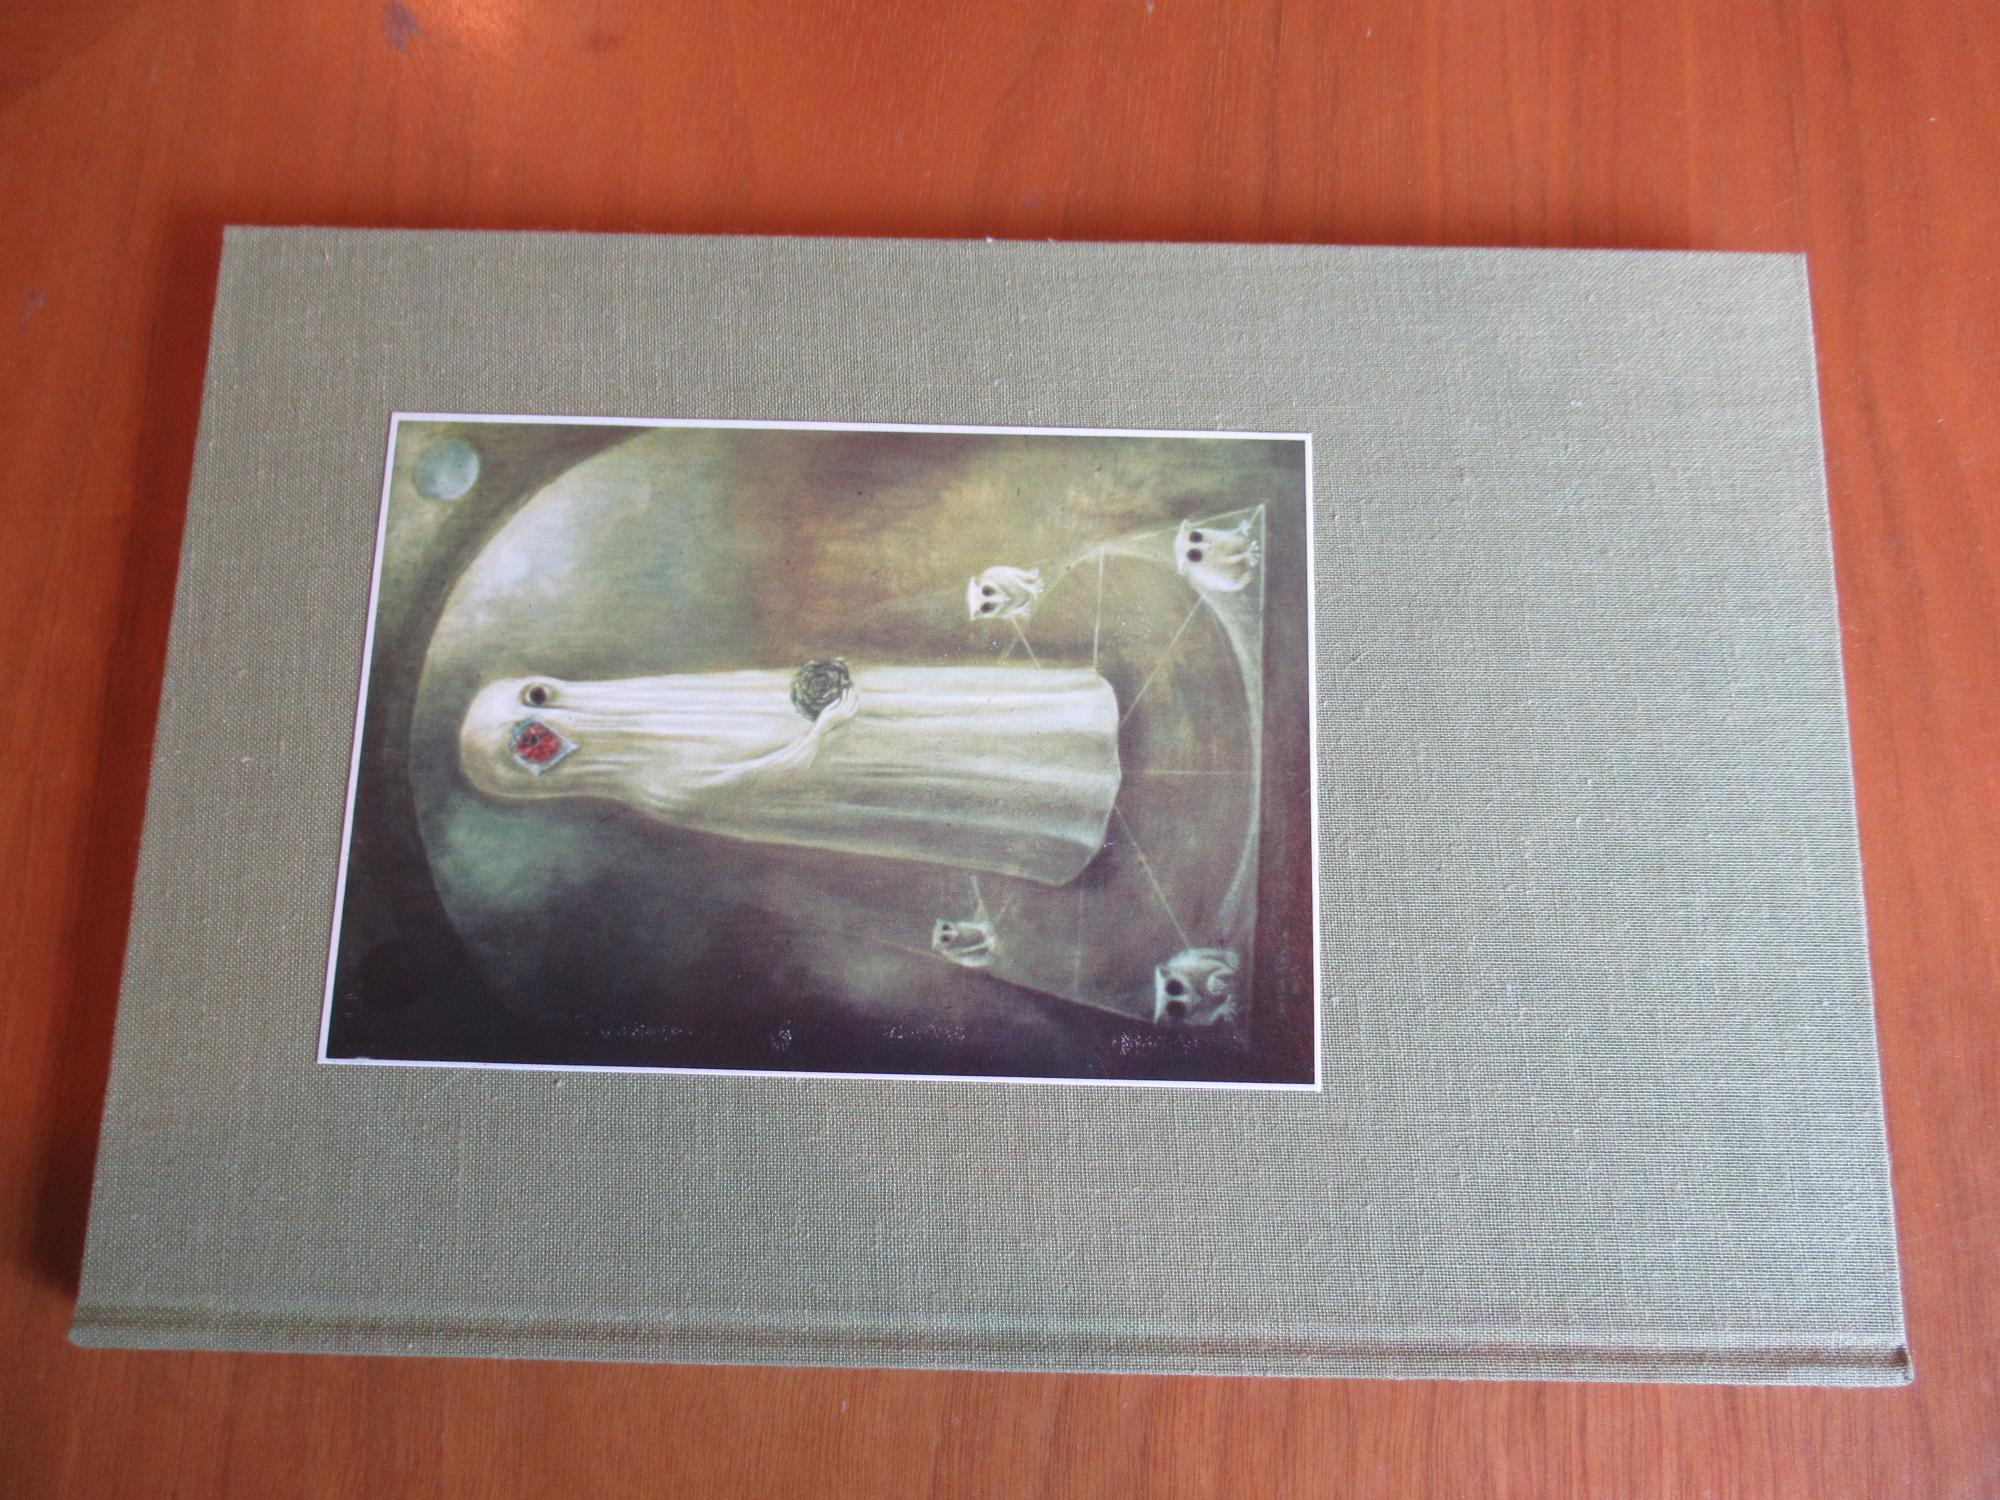 The Oval Lady, Other Stories: Six Surreal Stories (Signed, Limited Hardcover Edition) - Carrington, Leonora, Translations By Rochelle Holt, Foreword By Gloria Orenstein